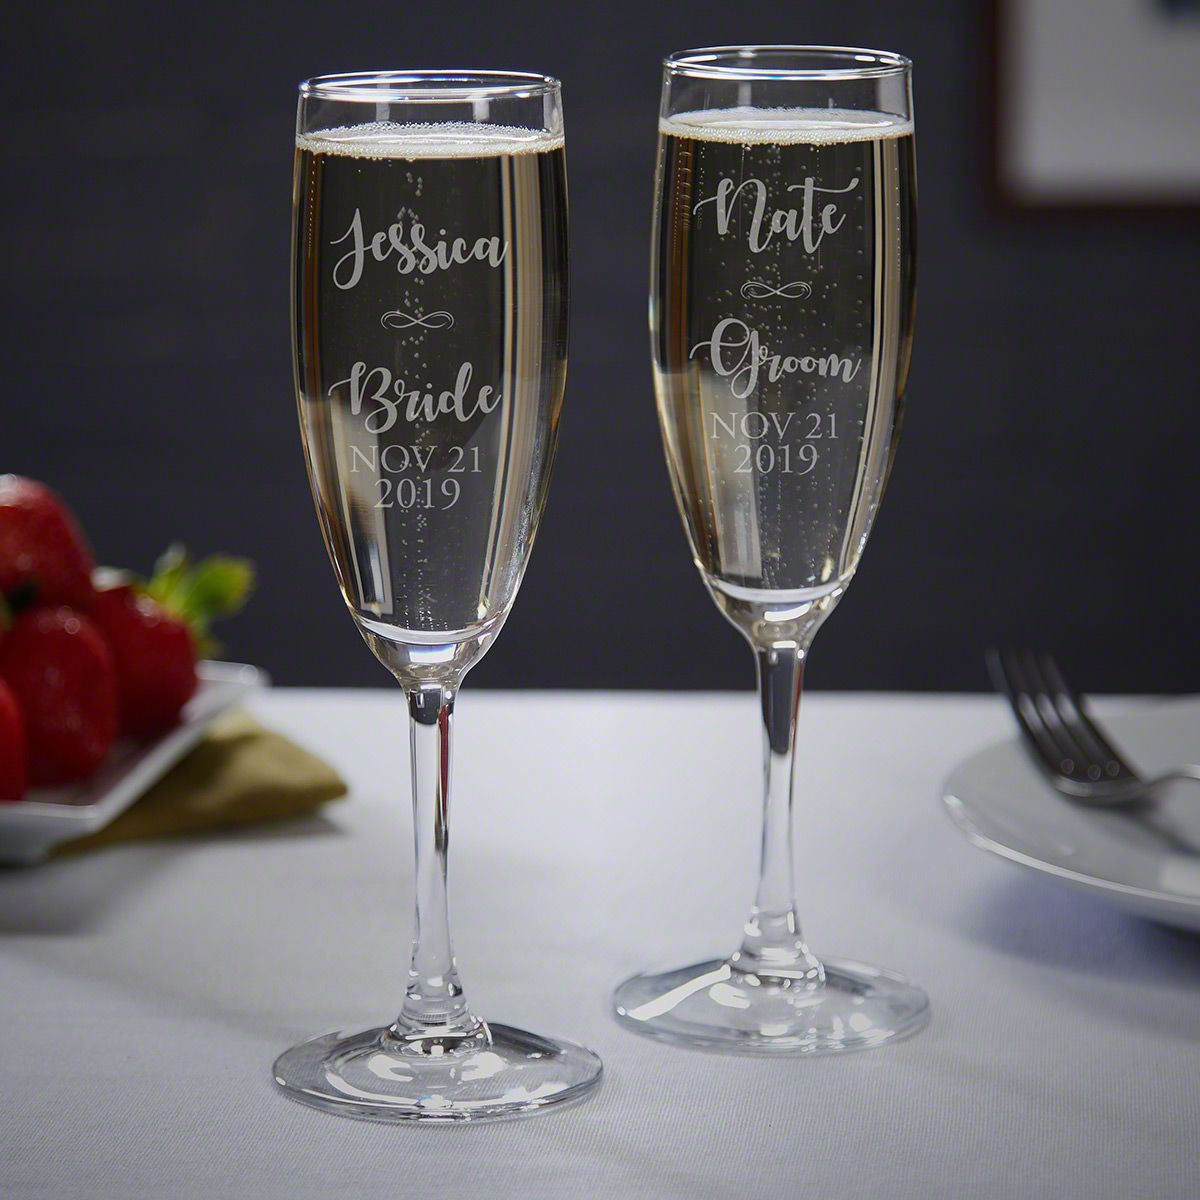 Wedding Traditions Personalized Champagne Flutes - Set of 2